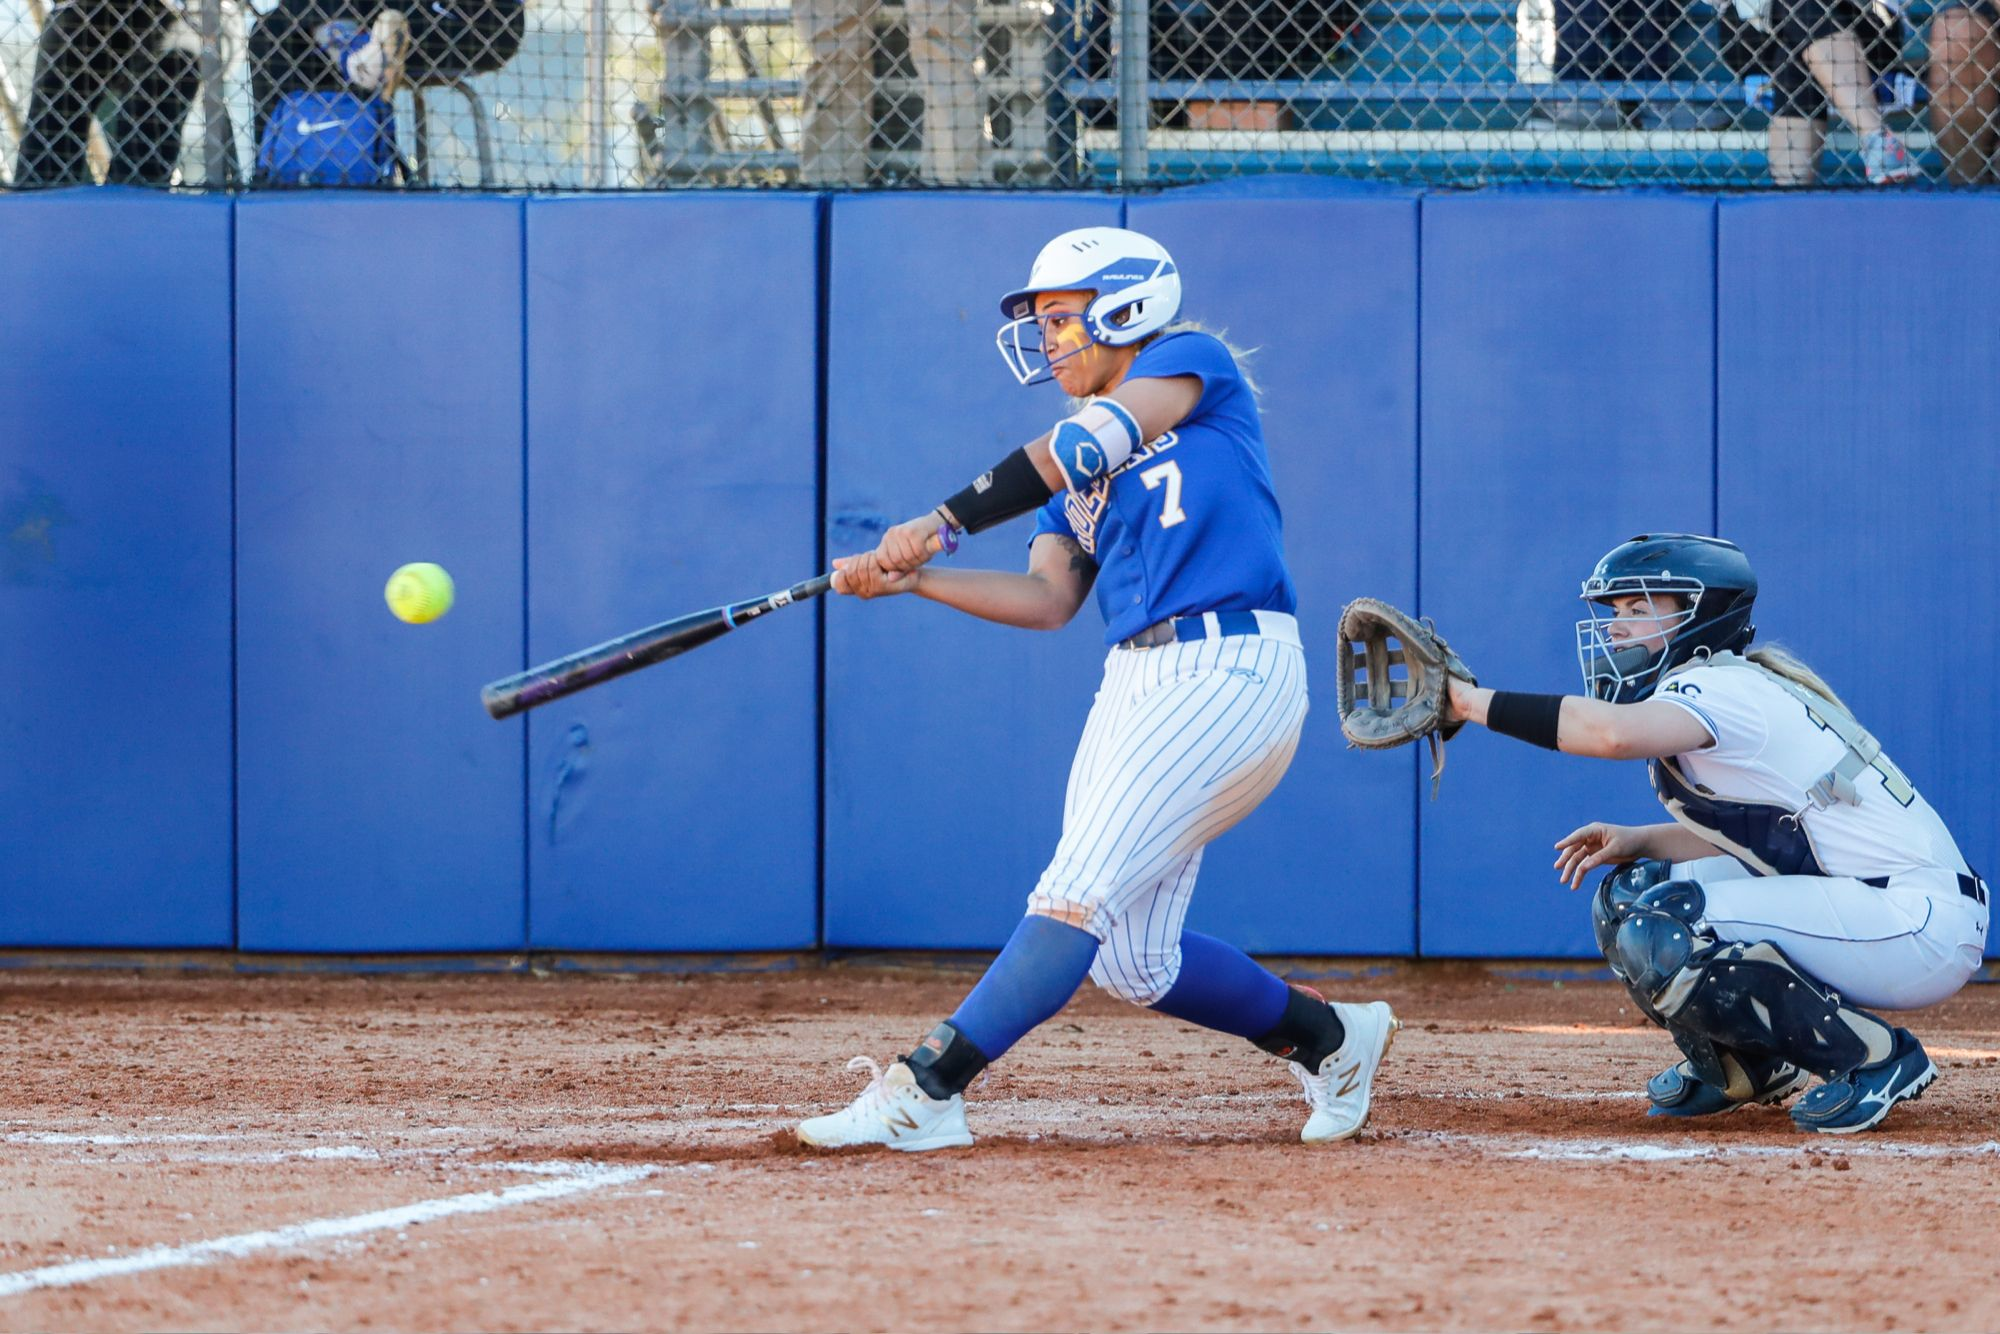 A softball player swinging and hitting a pitch over home plate.